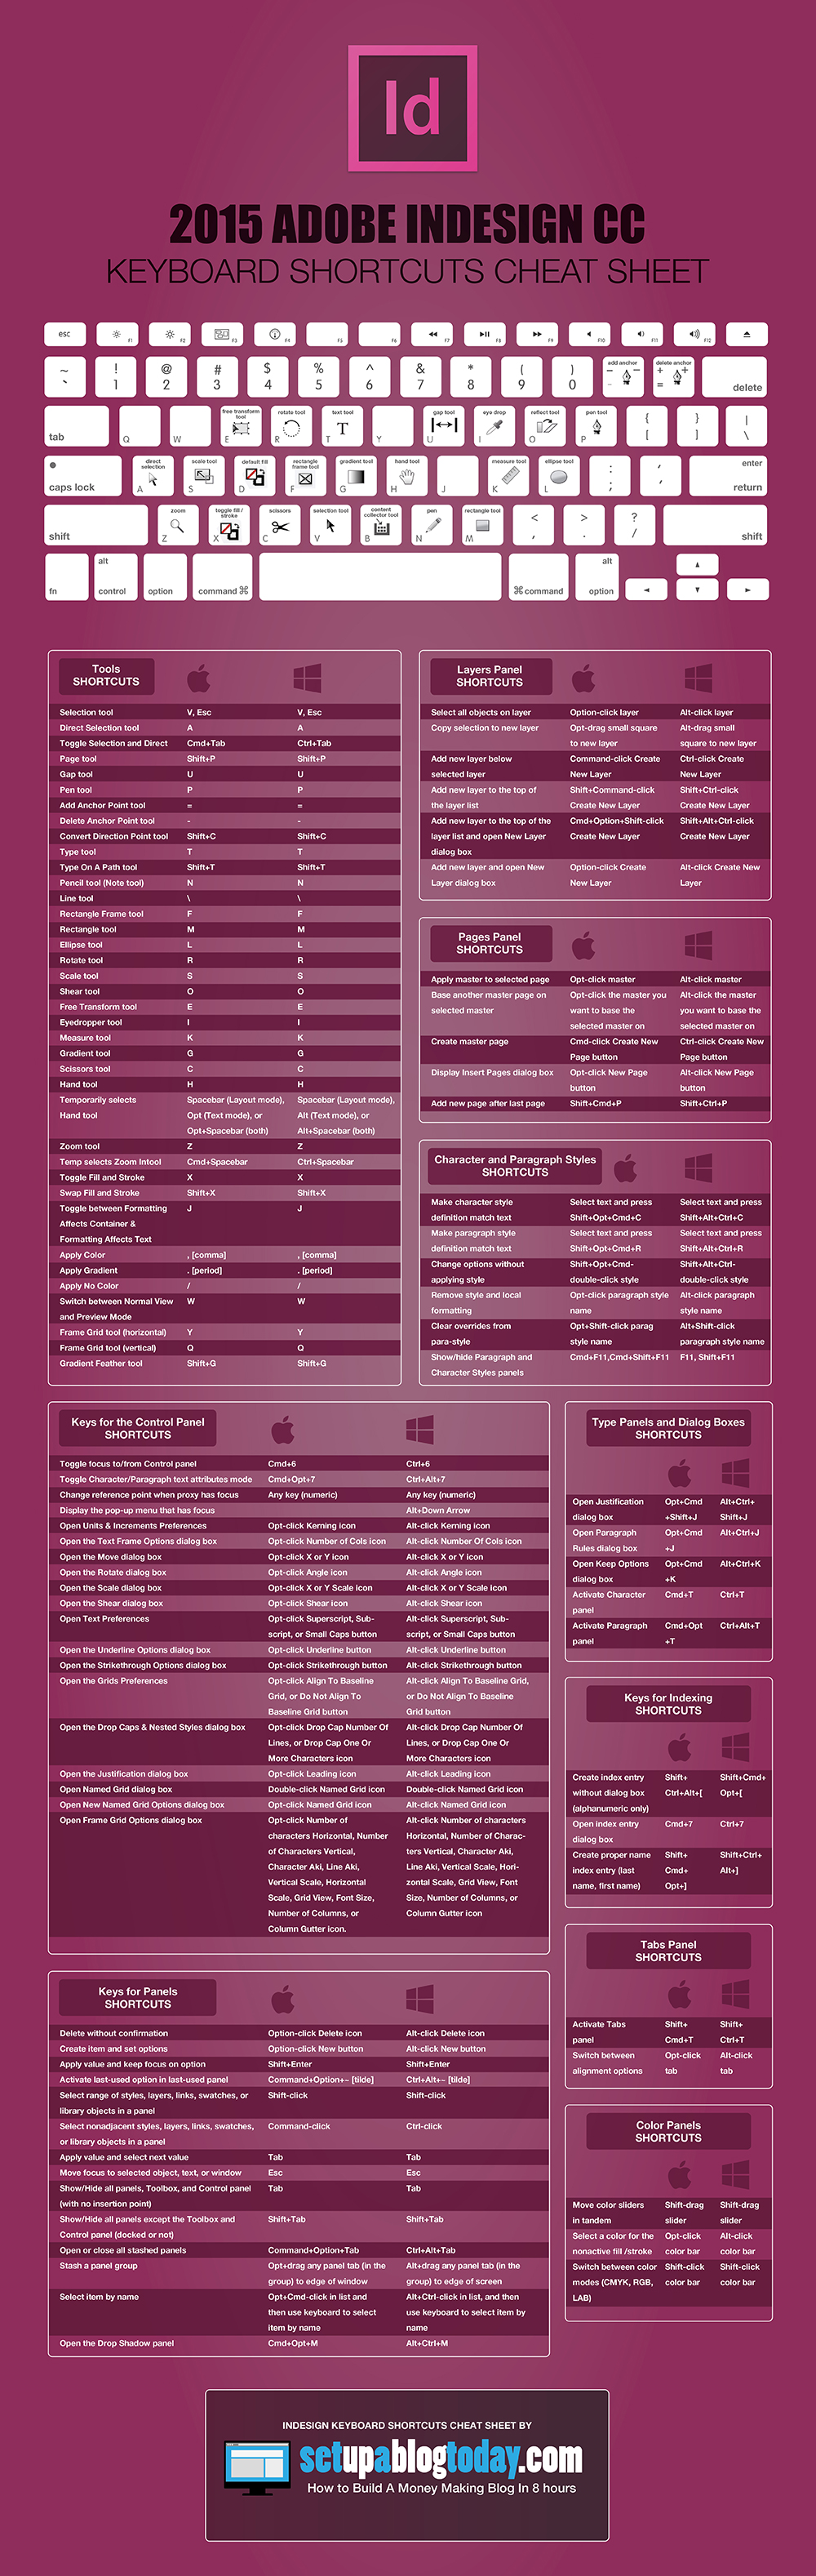 2015 Adobe InDesign CC Keyboard Shortcuts Cheat Sheet - Make A ...